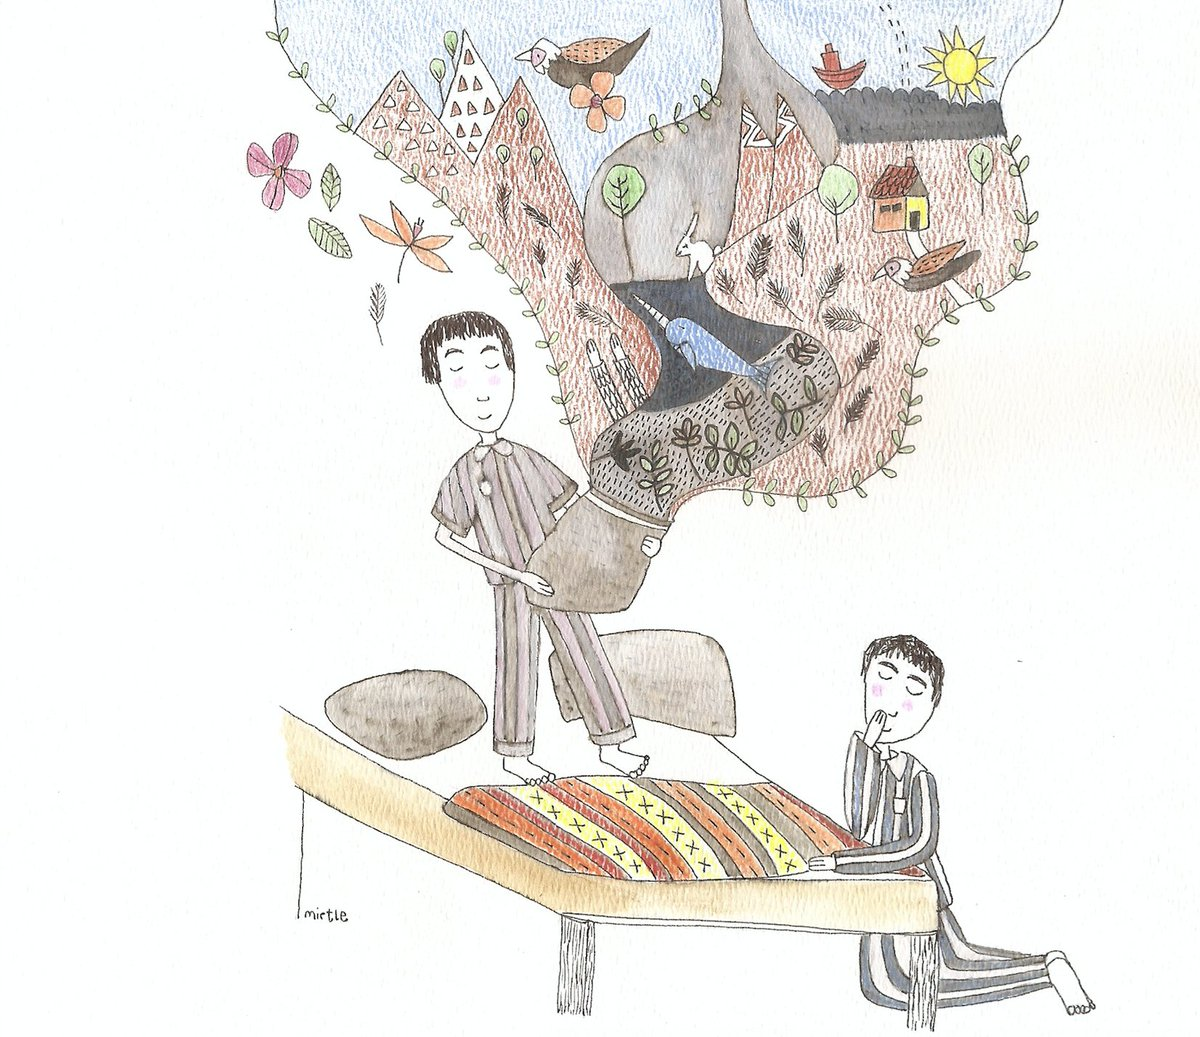 RT @hitRECord  You can draw a cartoon for our weekly #ComicCollective challenge - https://t.co/gyVBHCGCXM https://t.co/Osd0727JDT